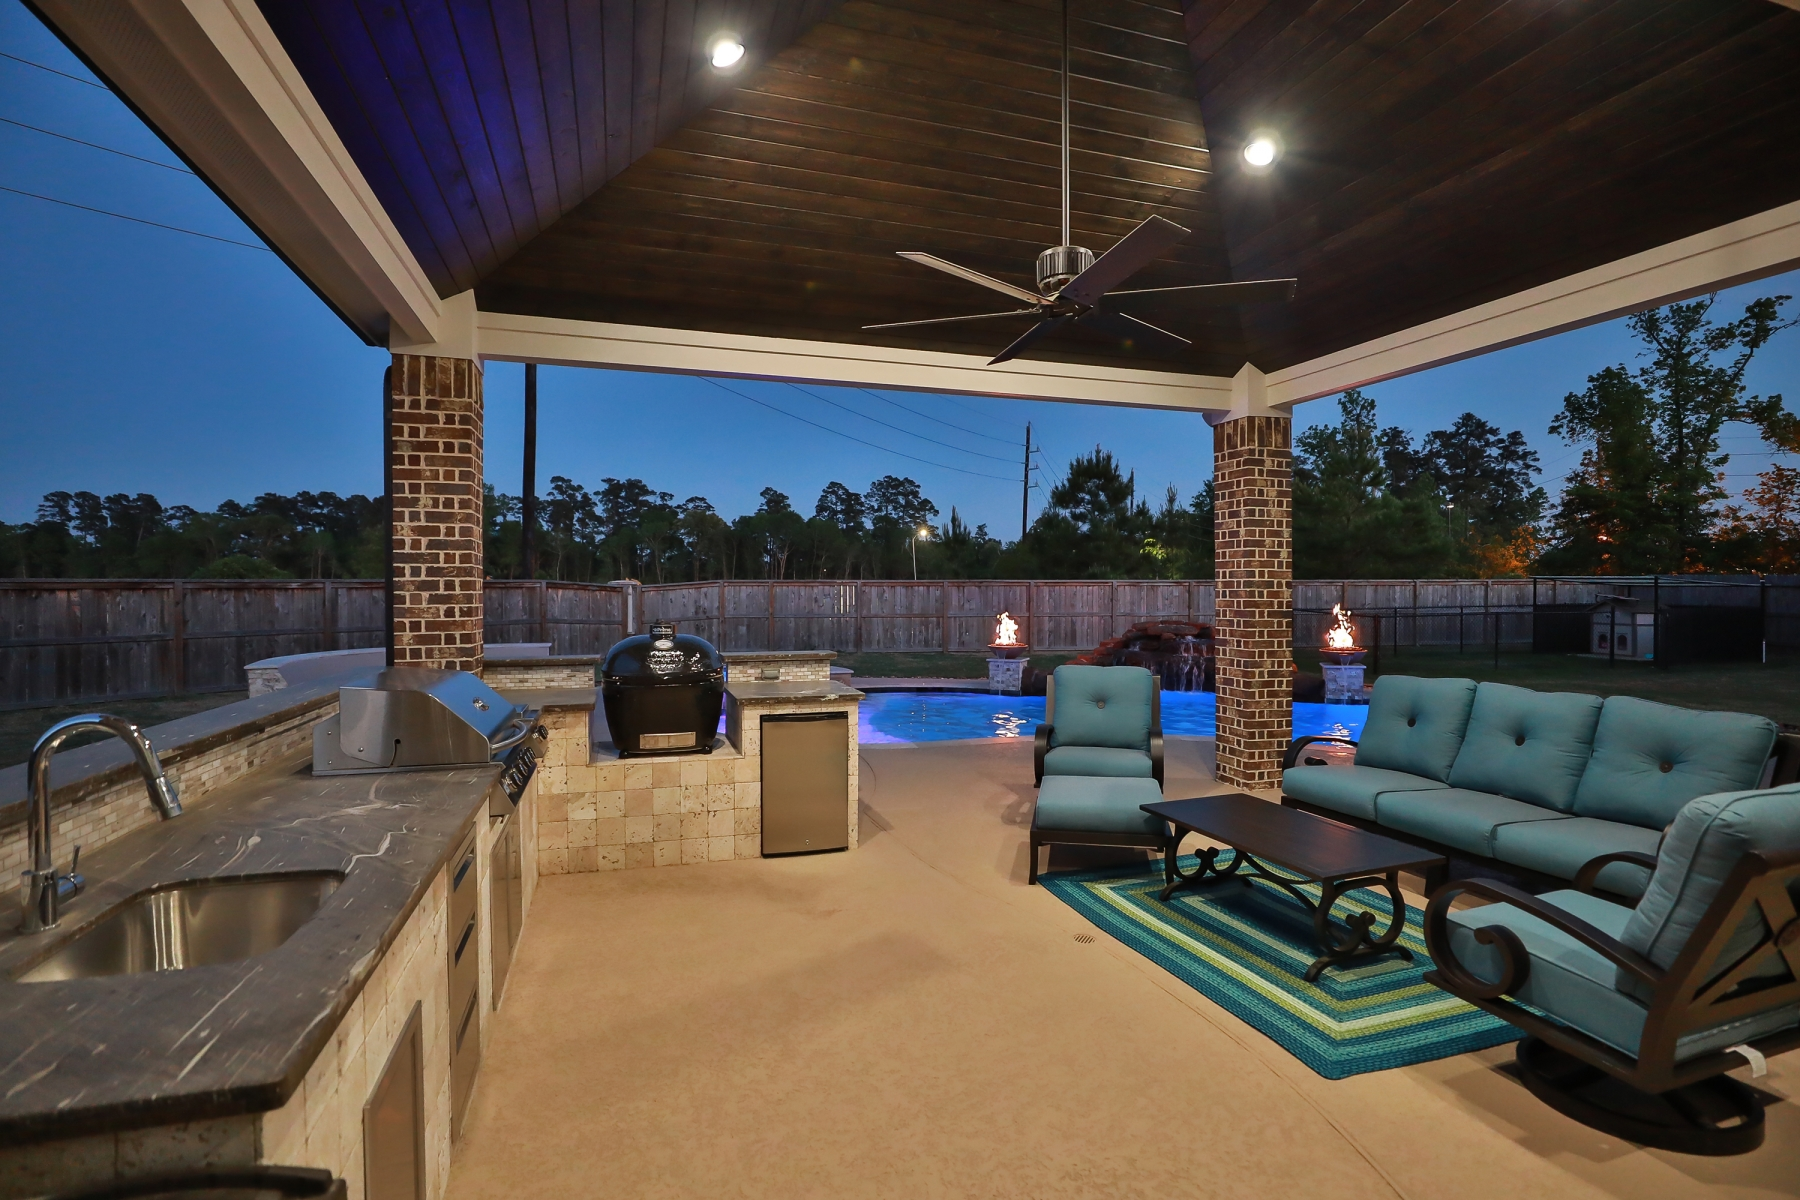 Outdoor Kitchen & Living Area Overlooking Pool at Night